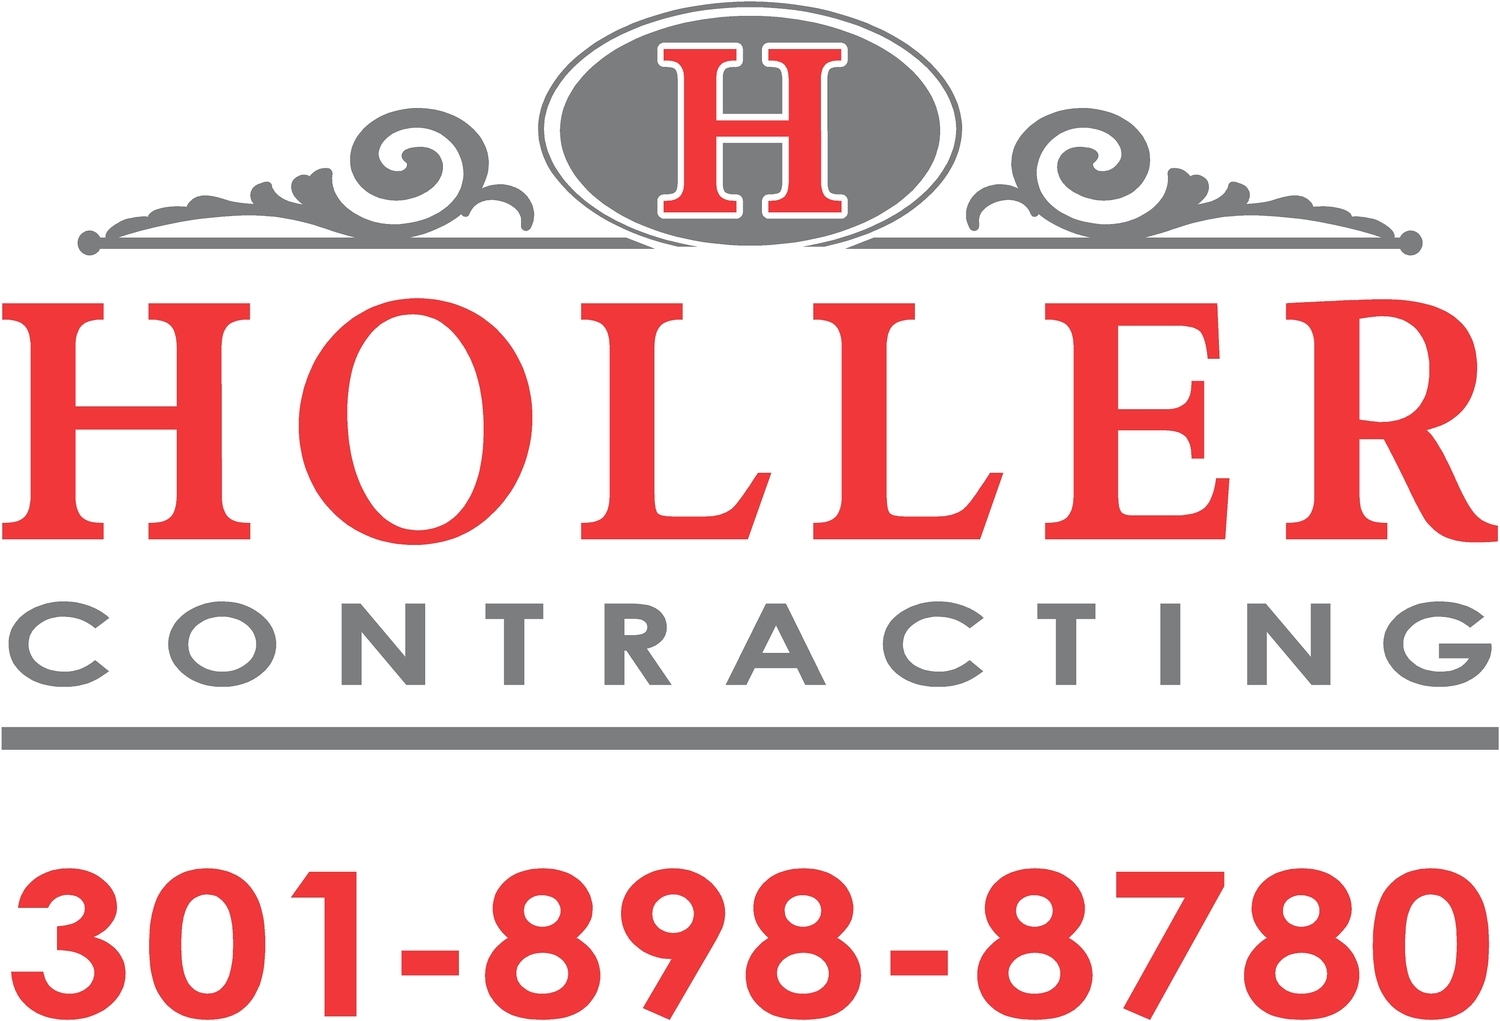 Holler Contracting LLC